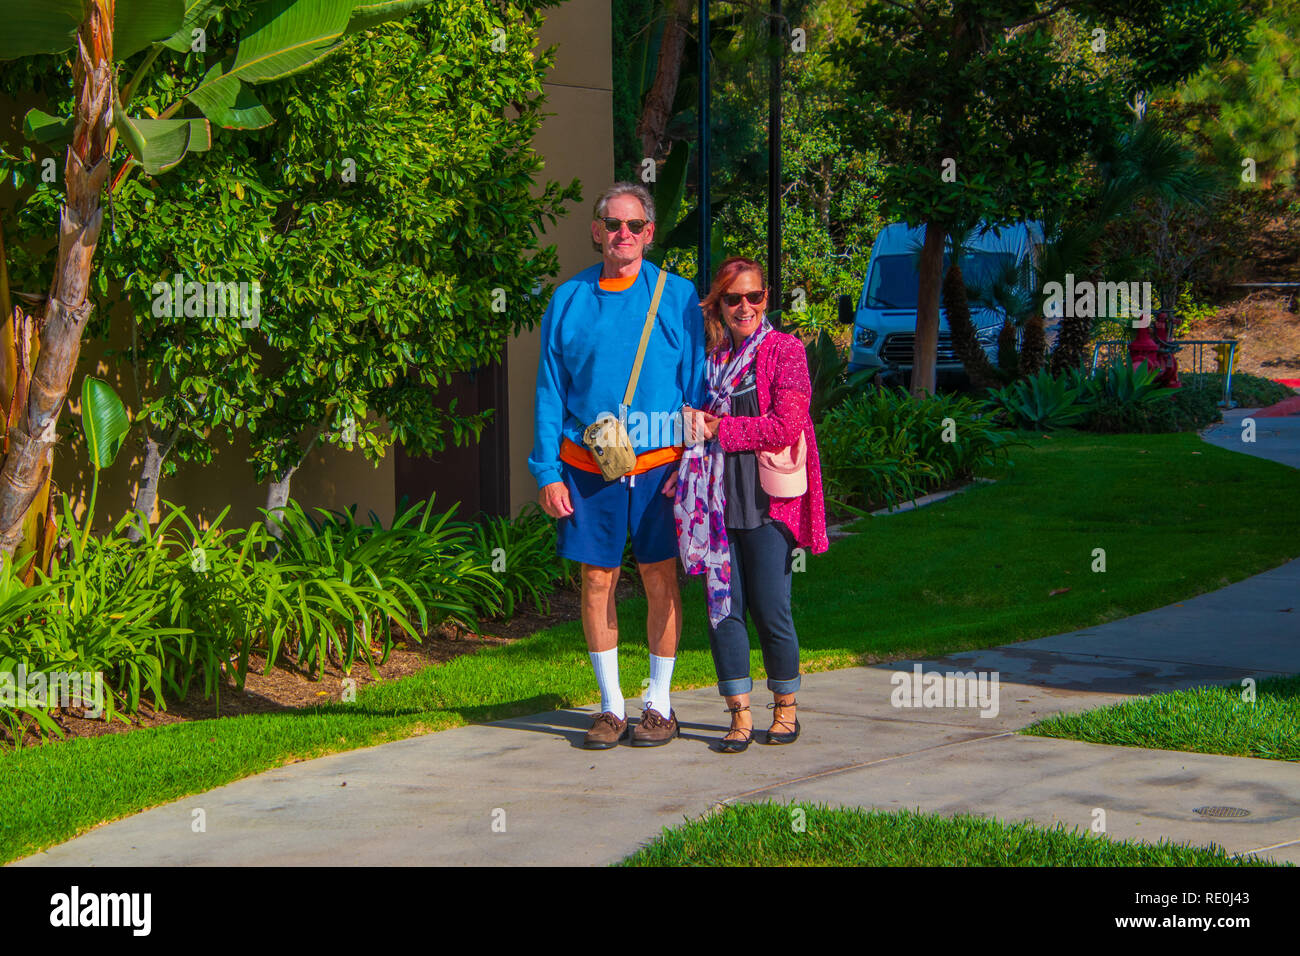 Senior citizen male caucasian baby boomer with Alzheimer's Disease wearing shorts and high white athletic socks being helped to walk by younger female - Stock Image